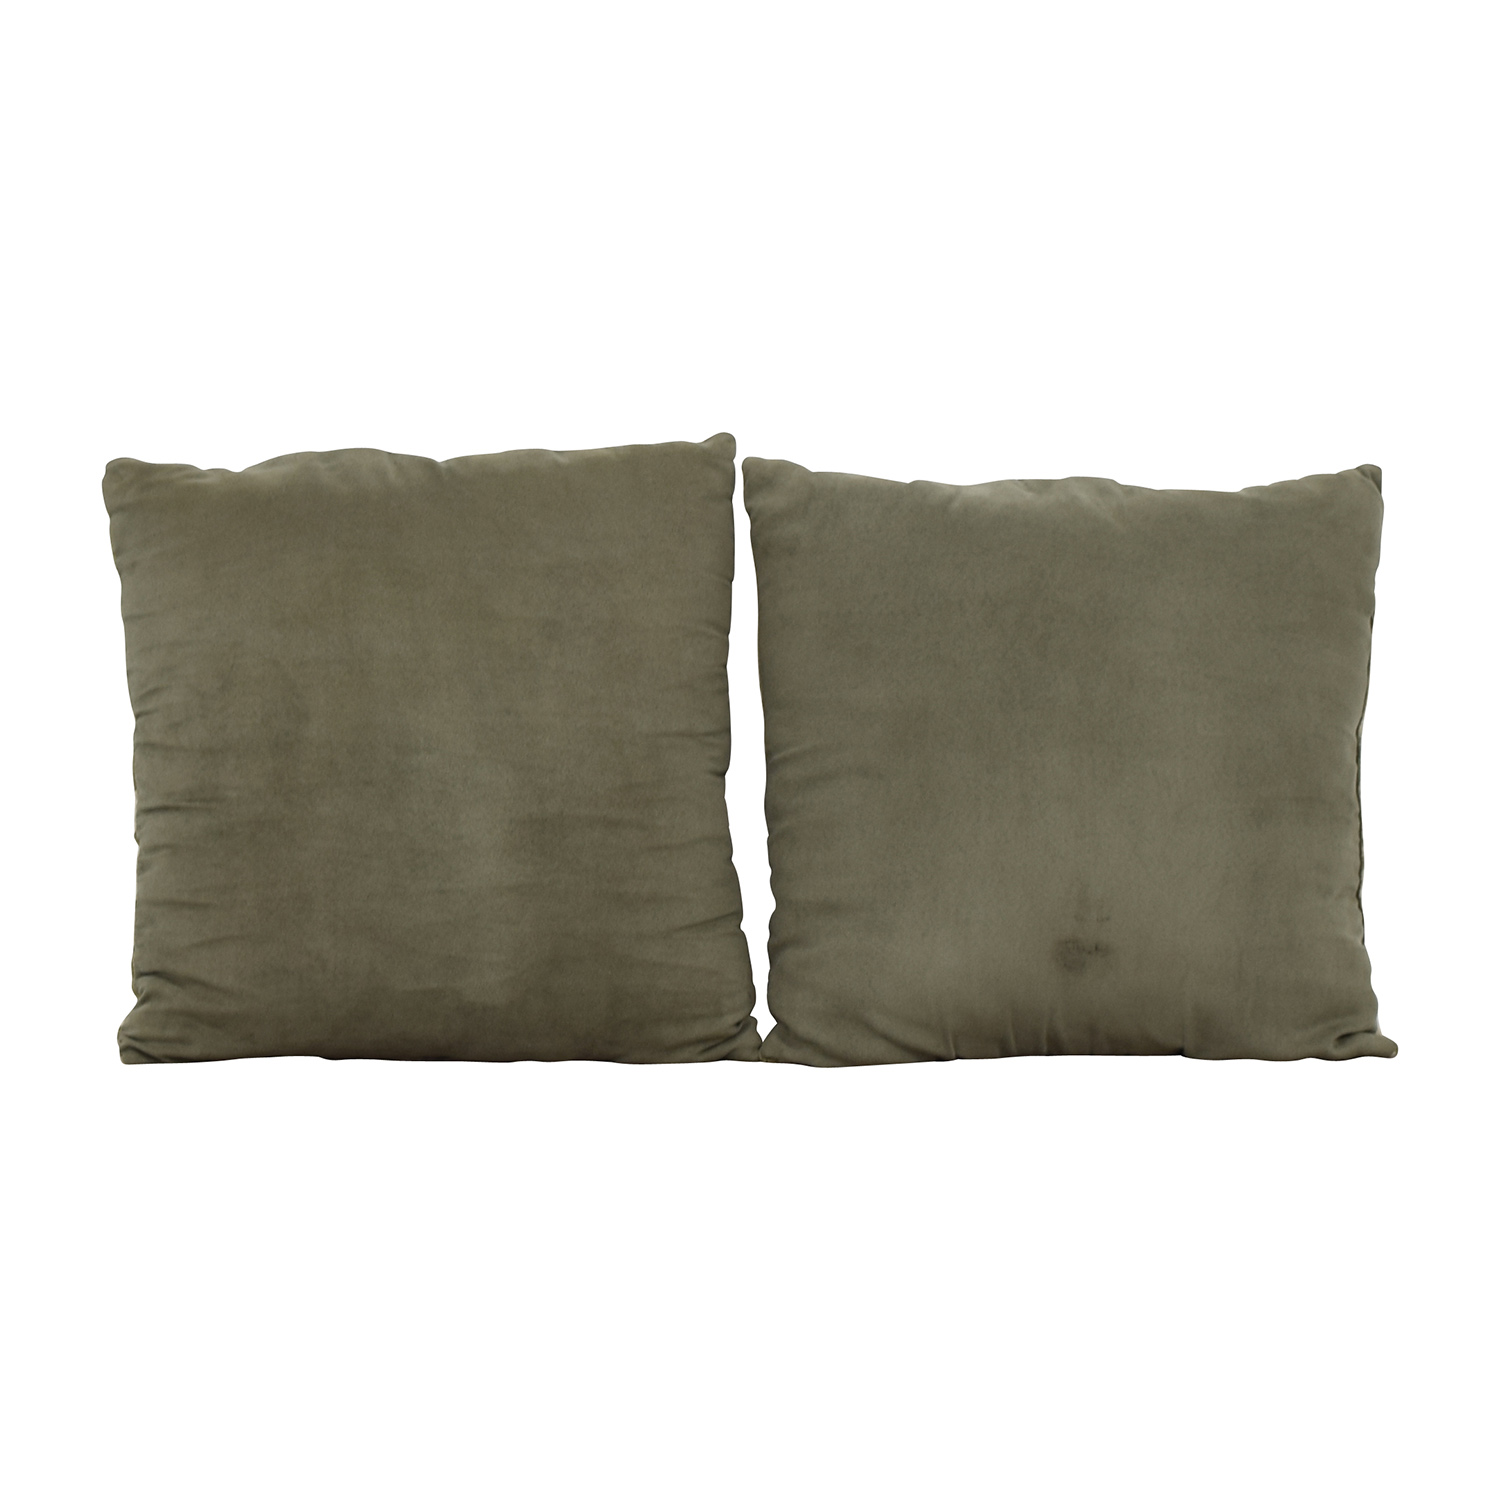 Multi-colored Square Design Tan and Green Toss Pillows price